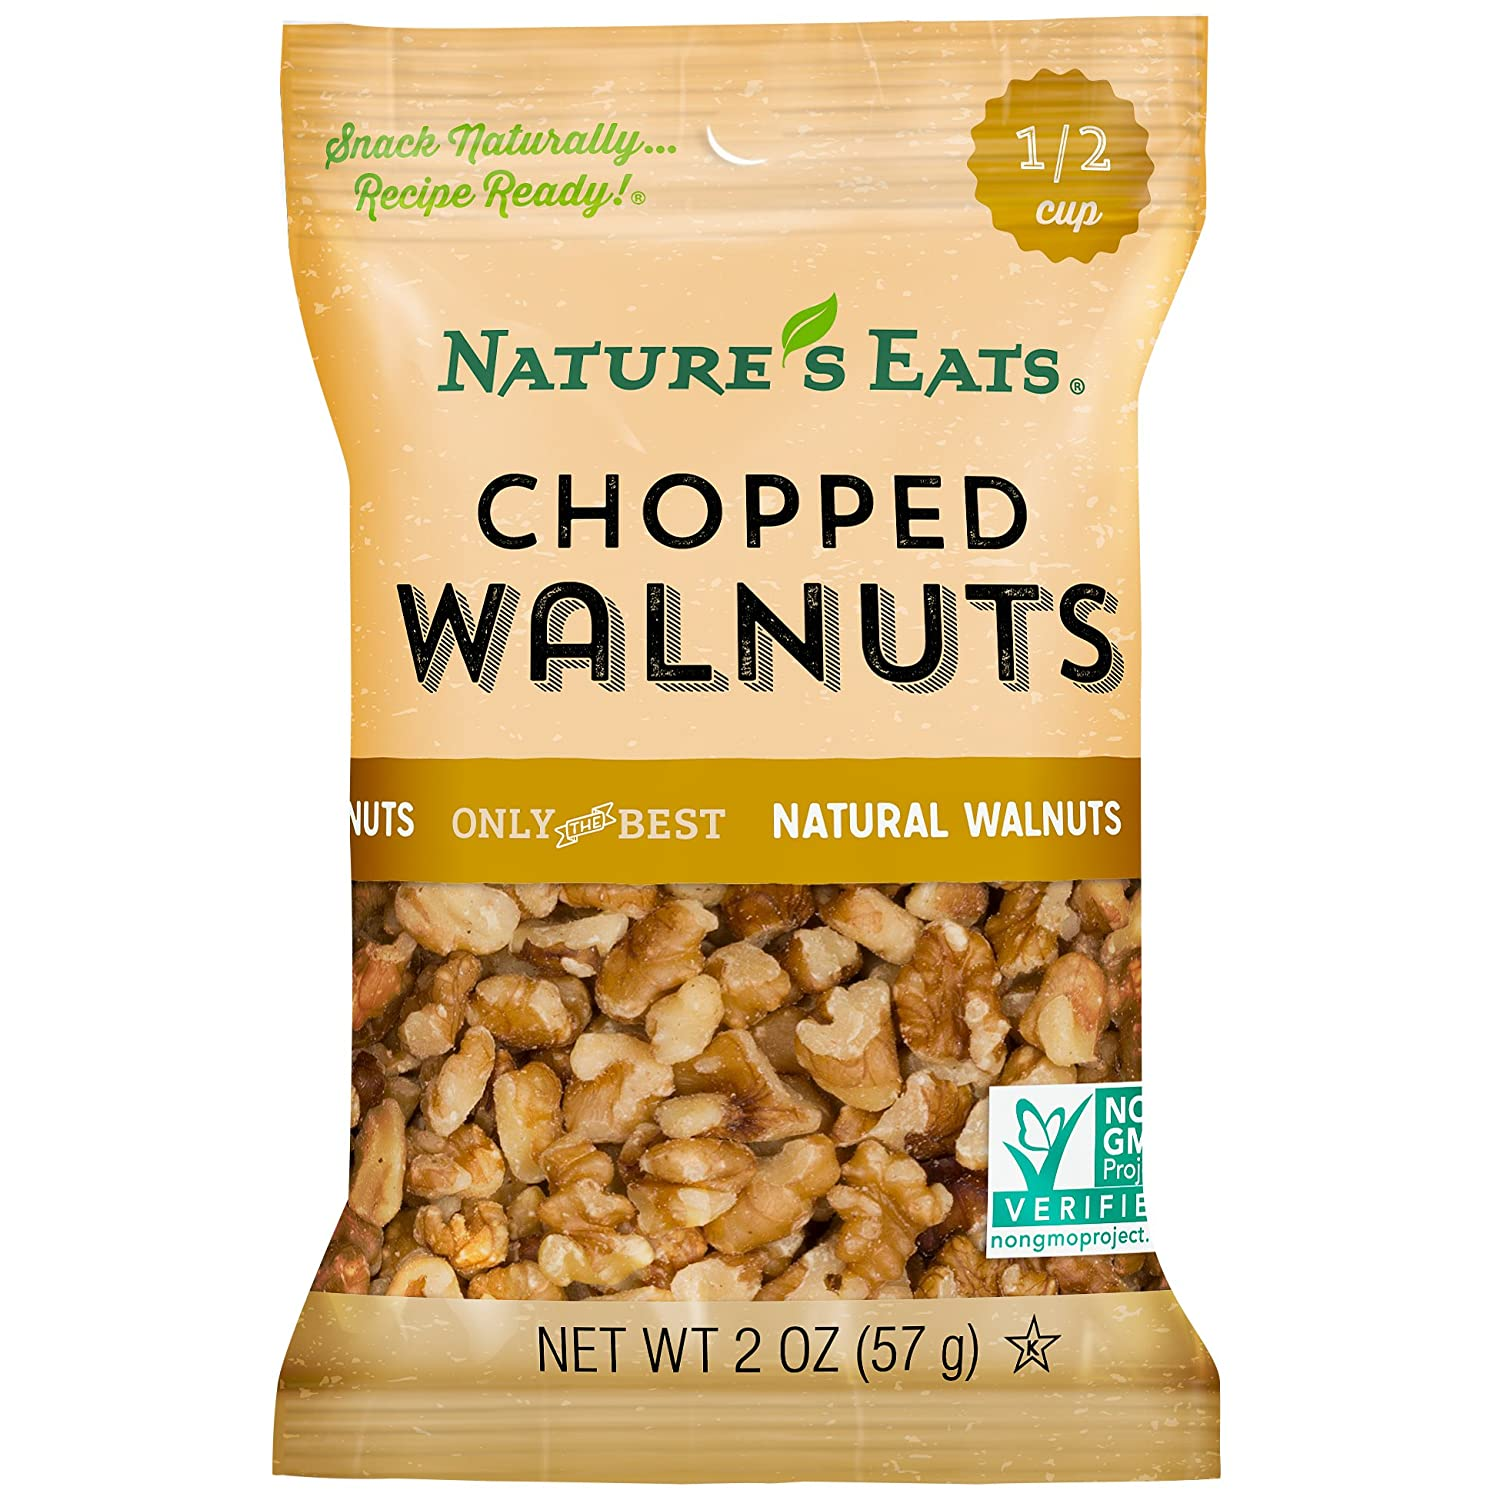 Nature's Eats Chopped Walnuts Max 53% OFF 2 Pack Ounce Max 46% OFF of 12